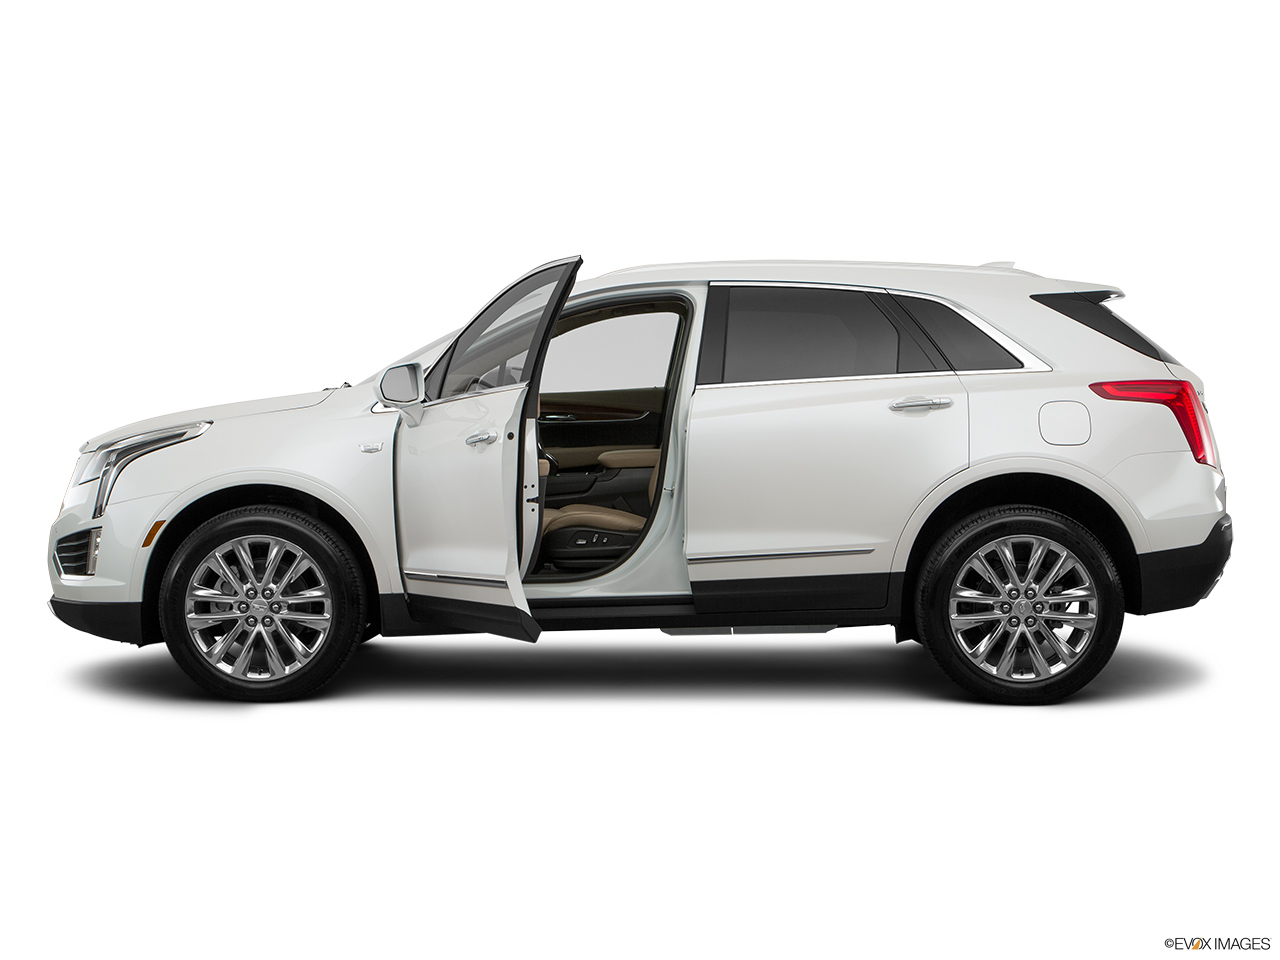 car features list for cadillac xt5 crossover 2017 3 6l awd platinum oman yallamotor. Black Bedroom Furniture Sets. Home Design Ideas